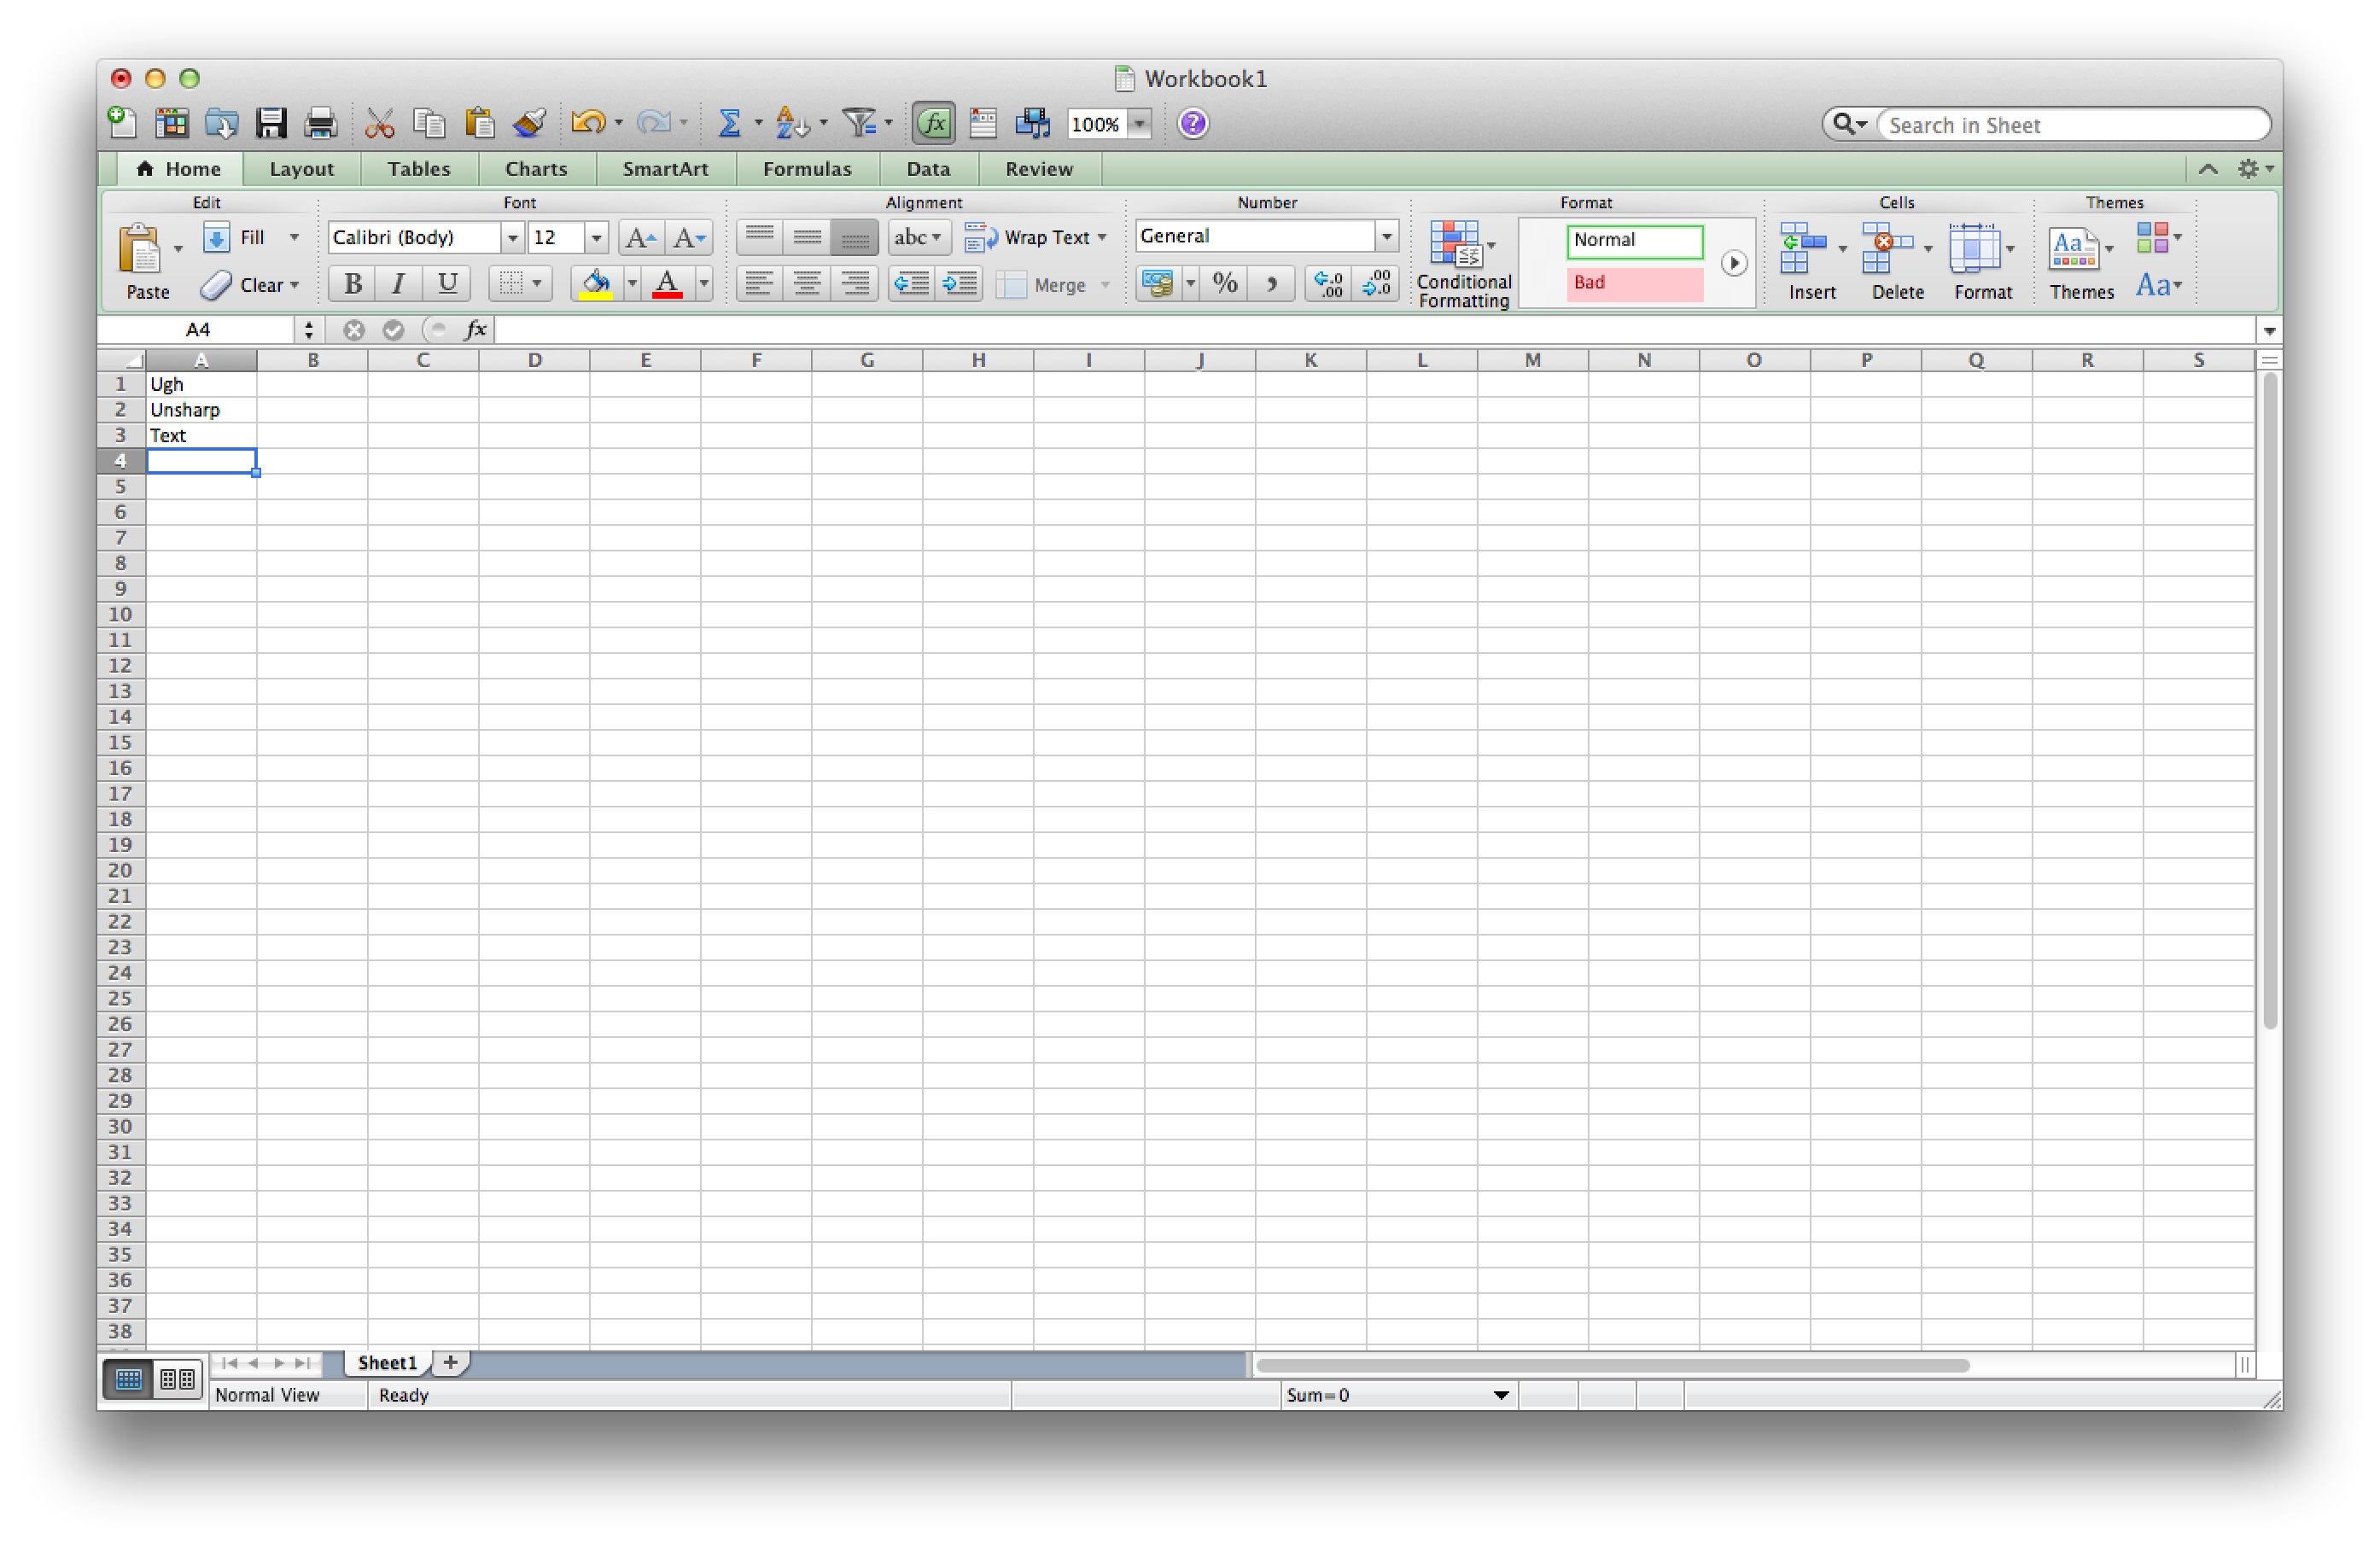 Amazon.com: Customer reviews: Learn Excel 2011 for Mac